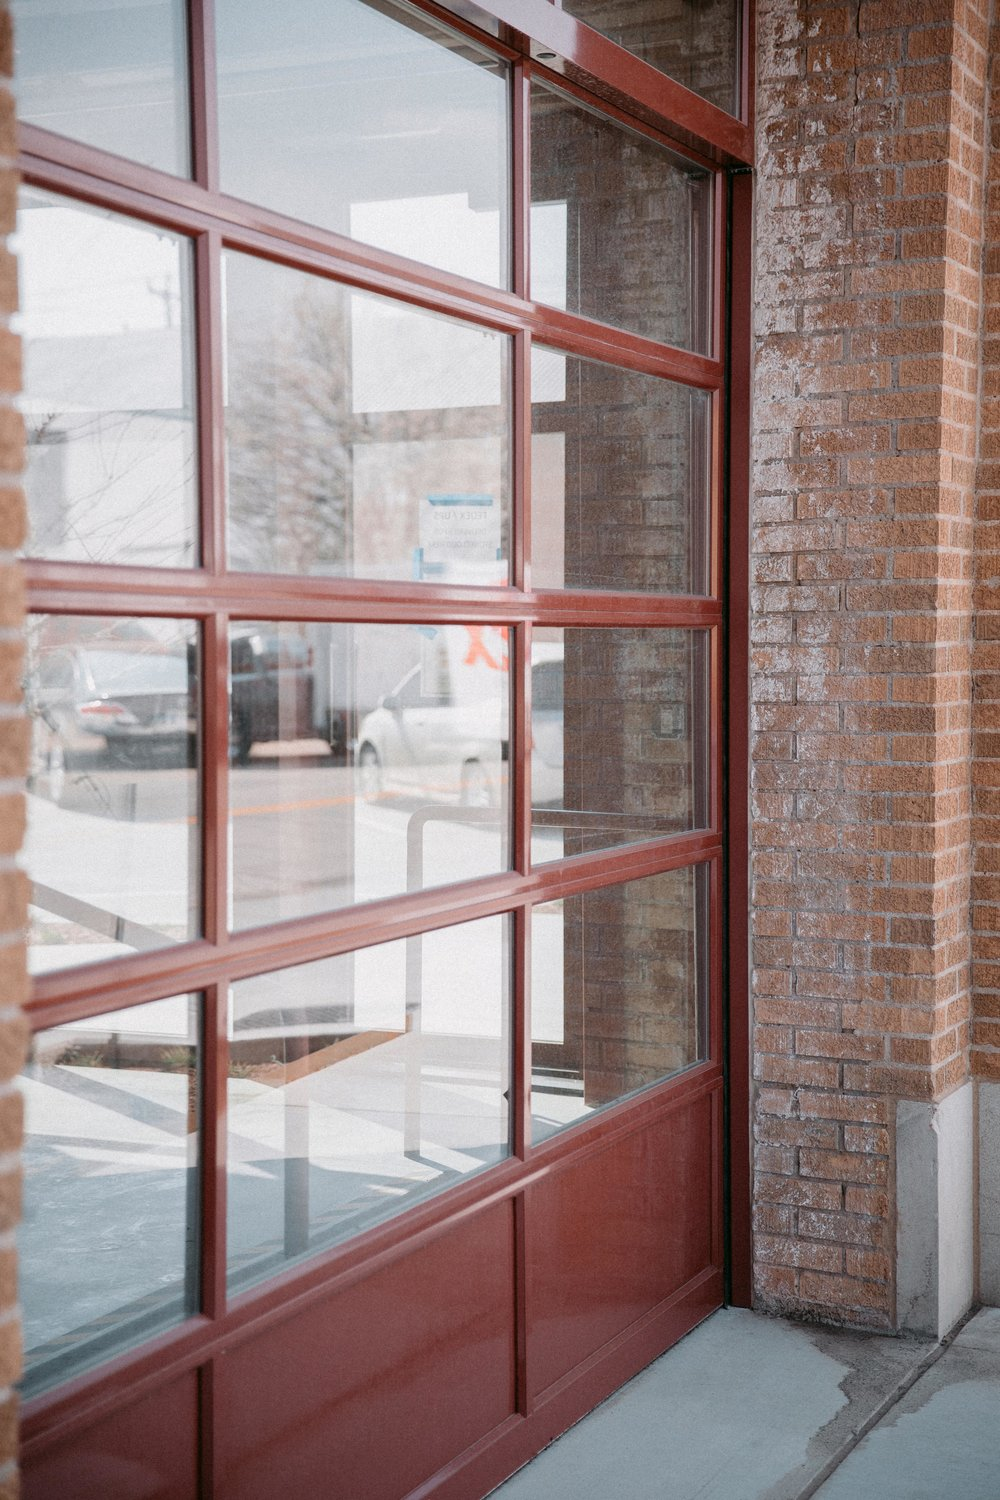 WindsorDoor_CommercialDoors_HighFiveMedia_SunshineLaundry_6.jpg